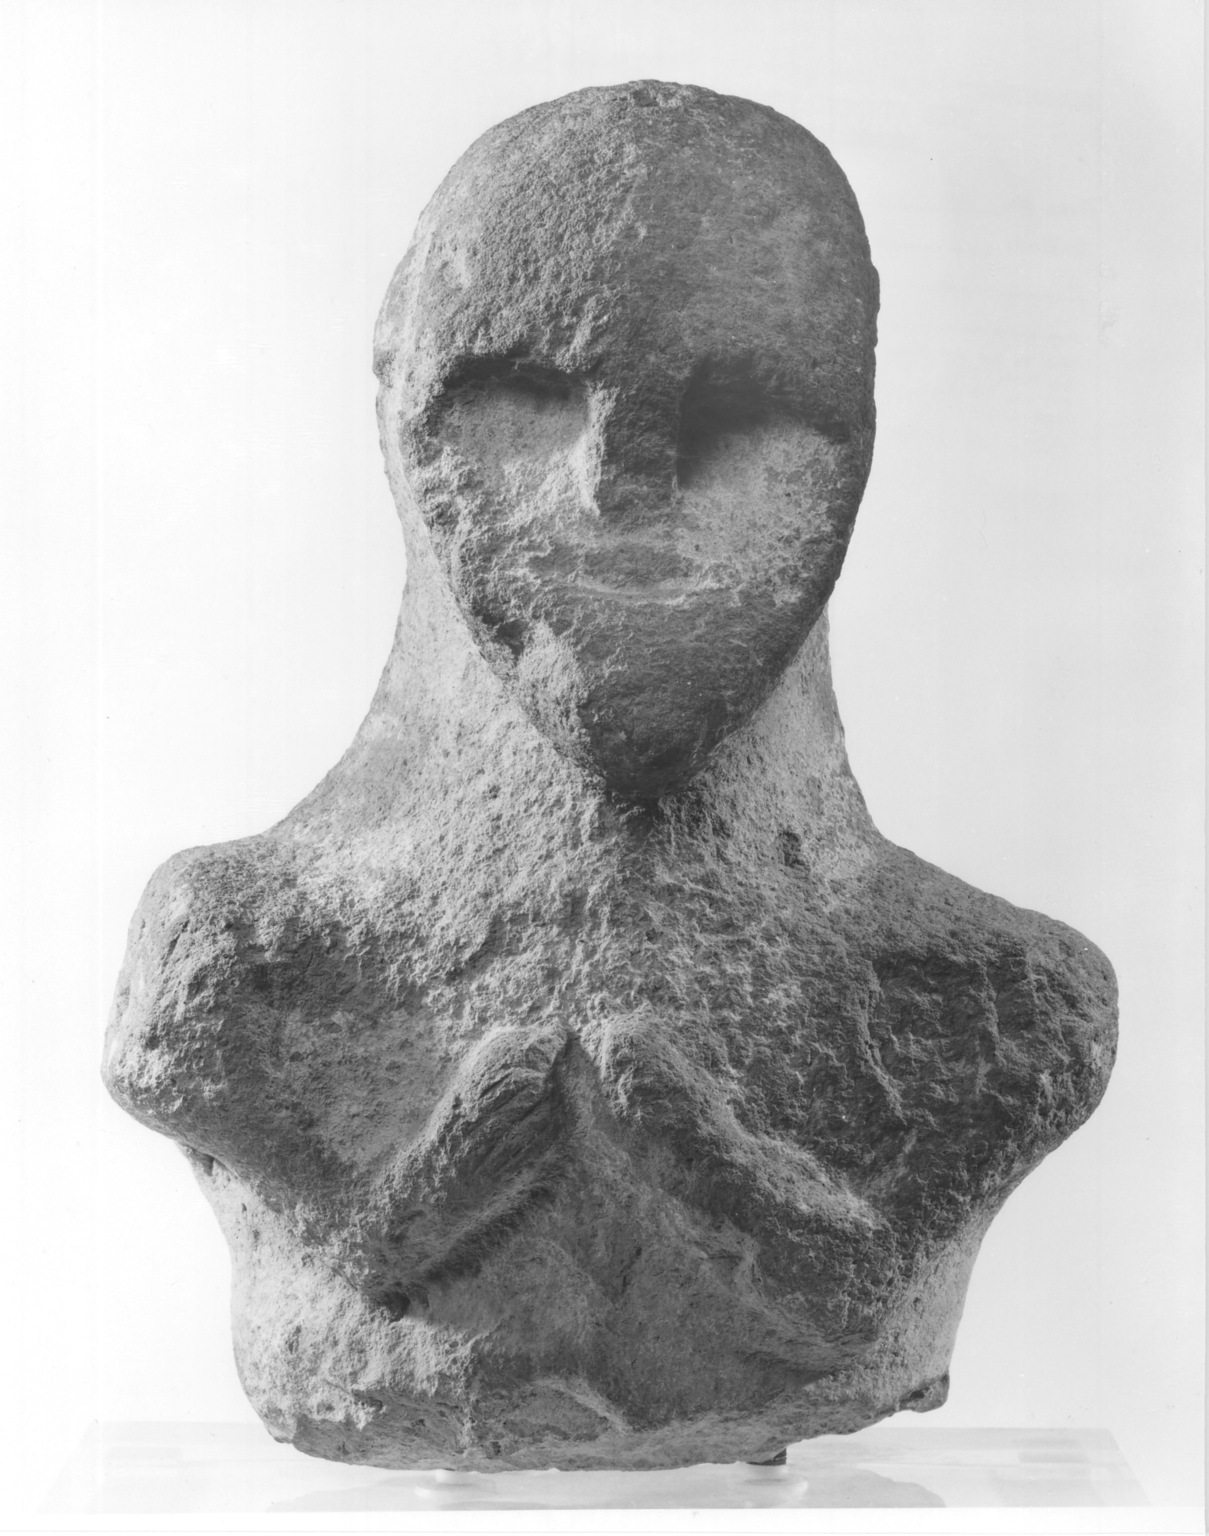 Brooklyn Museum: Head and Bust